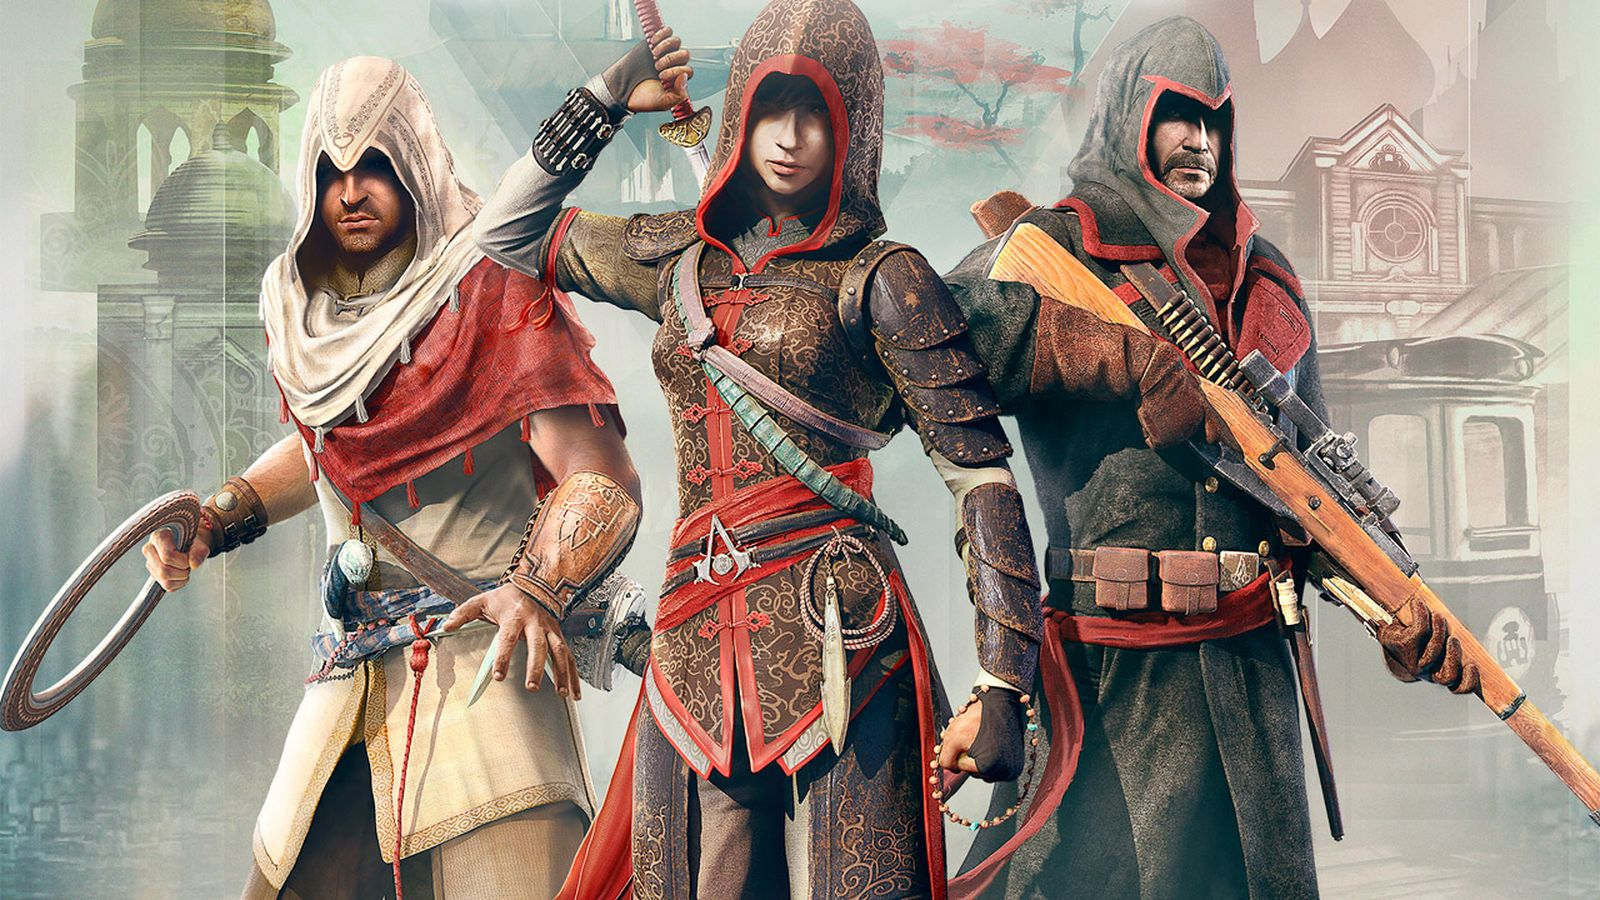 Photo of Assassins Creed Assassins arrive in India and Russia